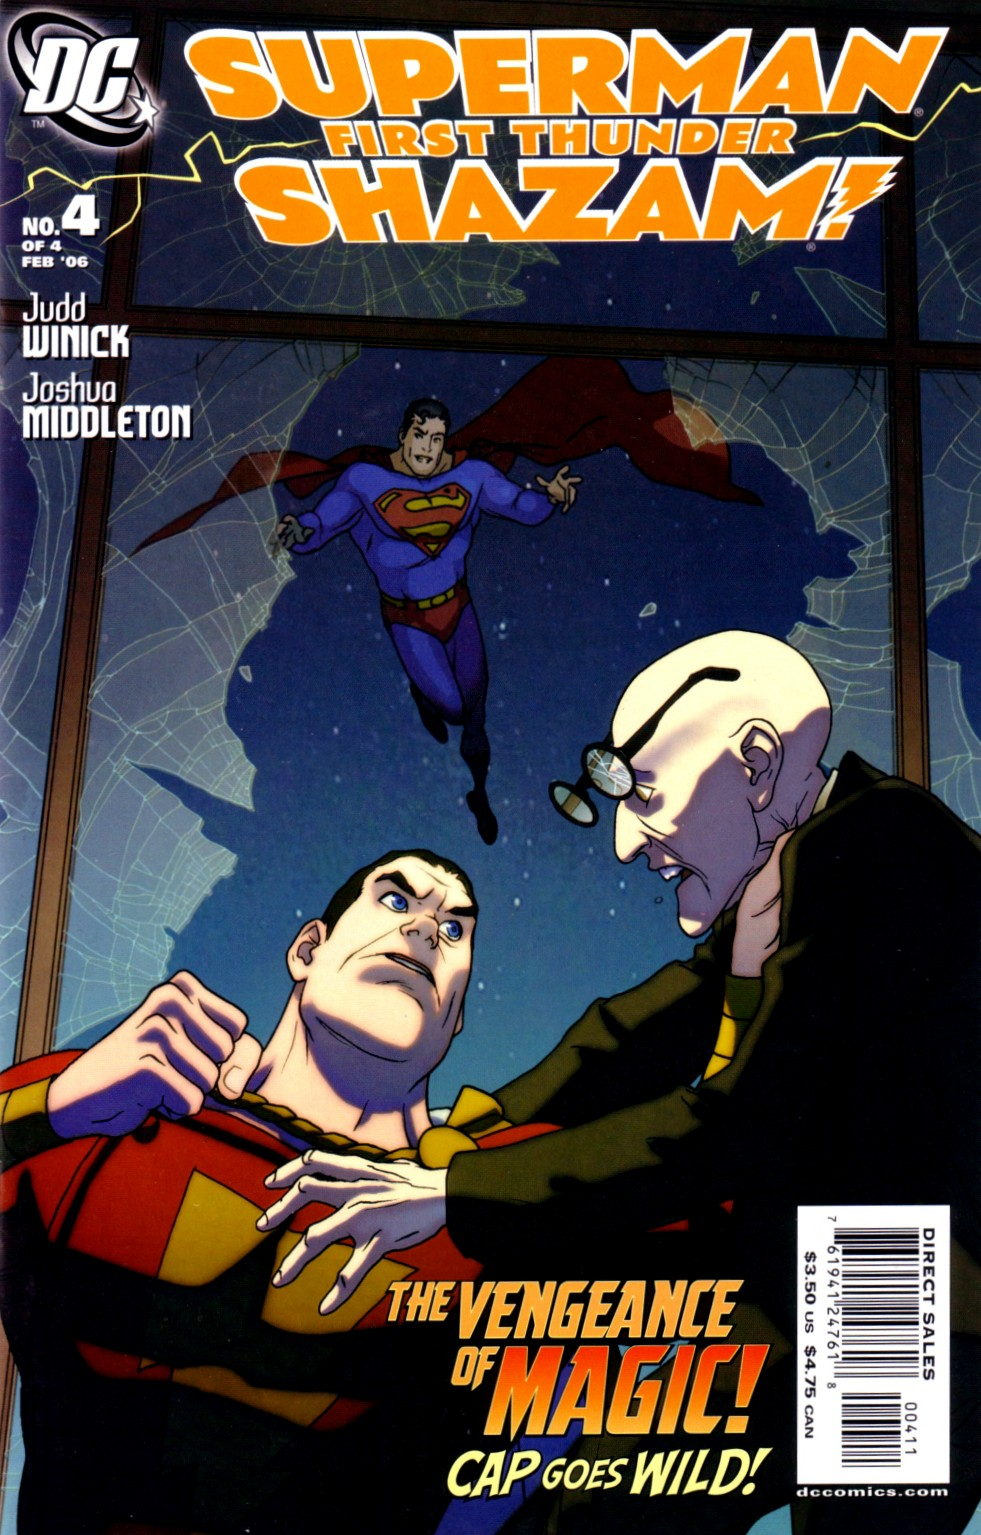 Superman/Shazam!: First Thunder Vol 1 4